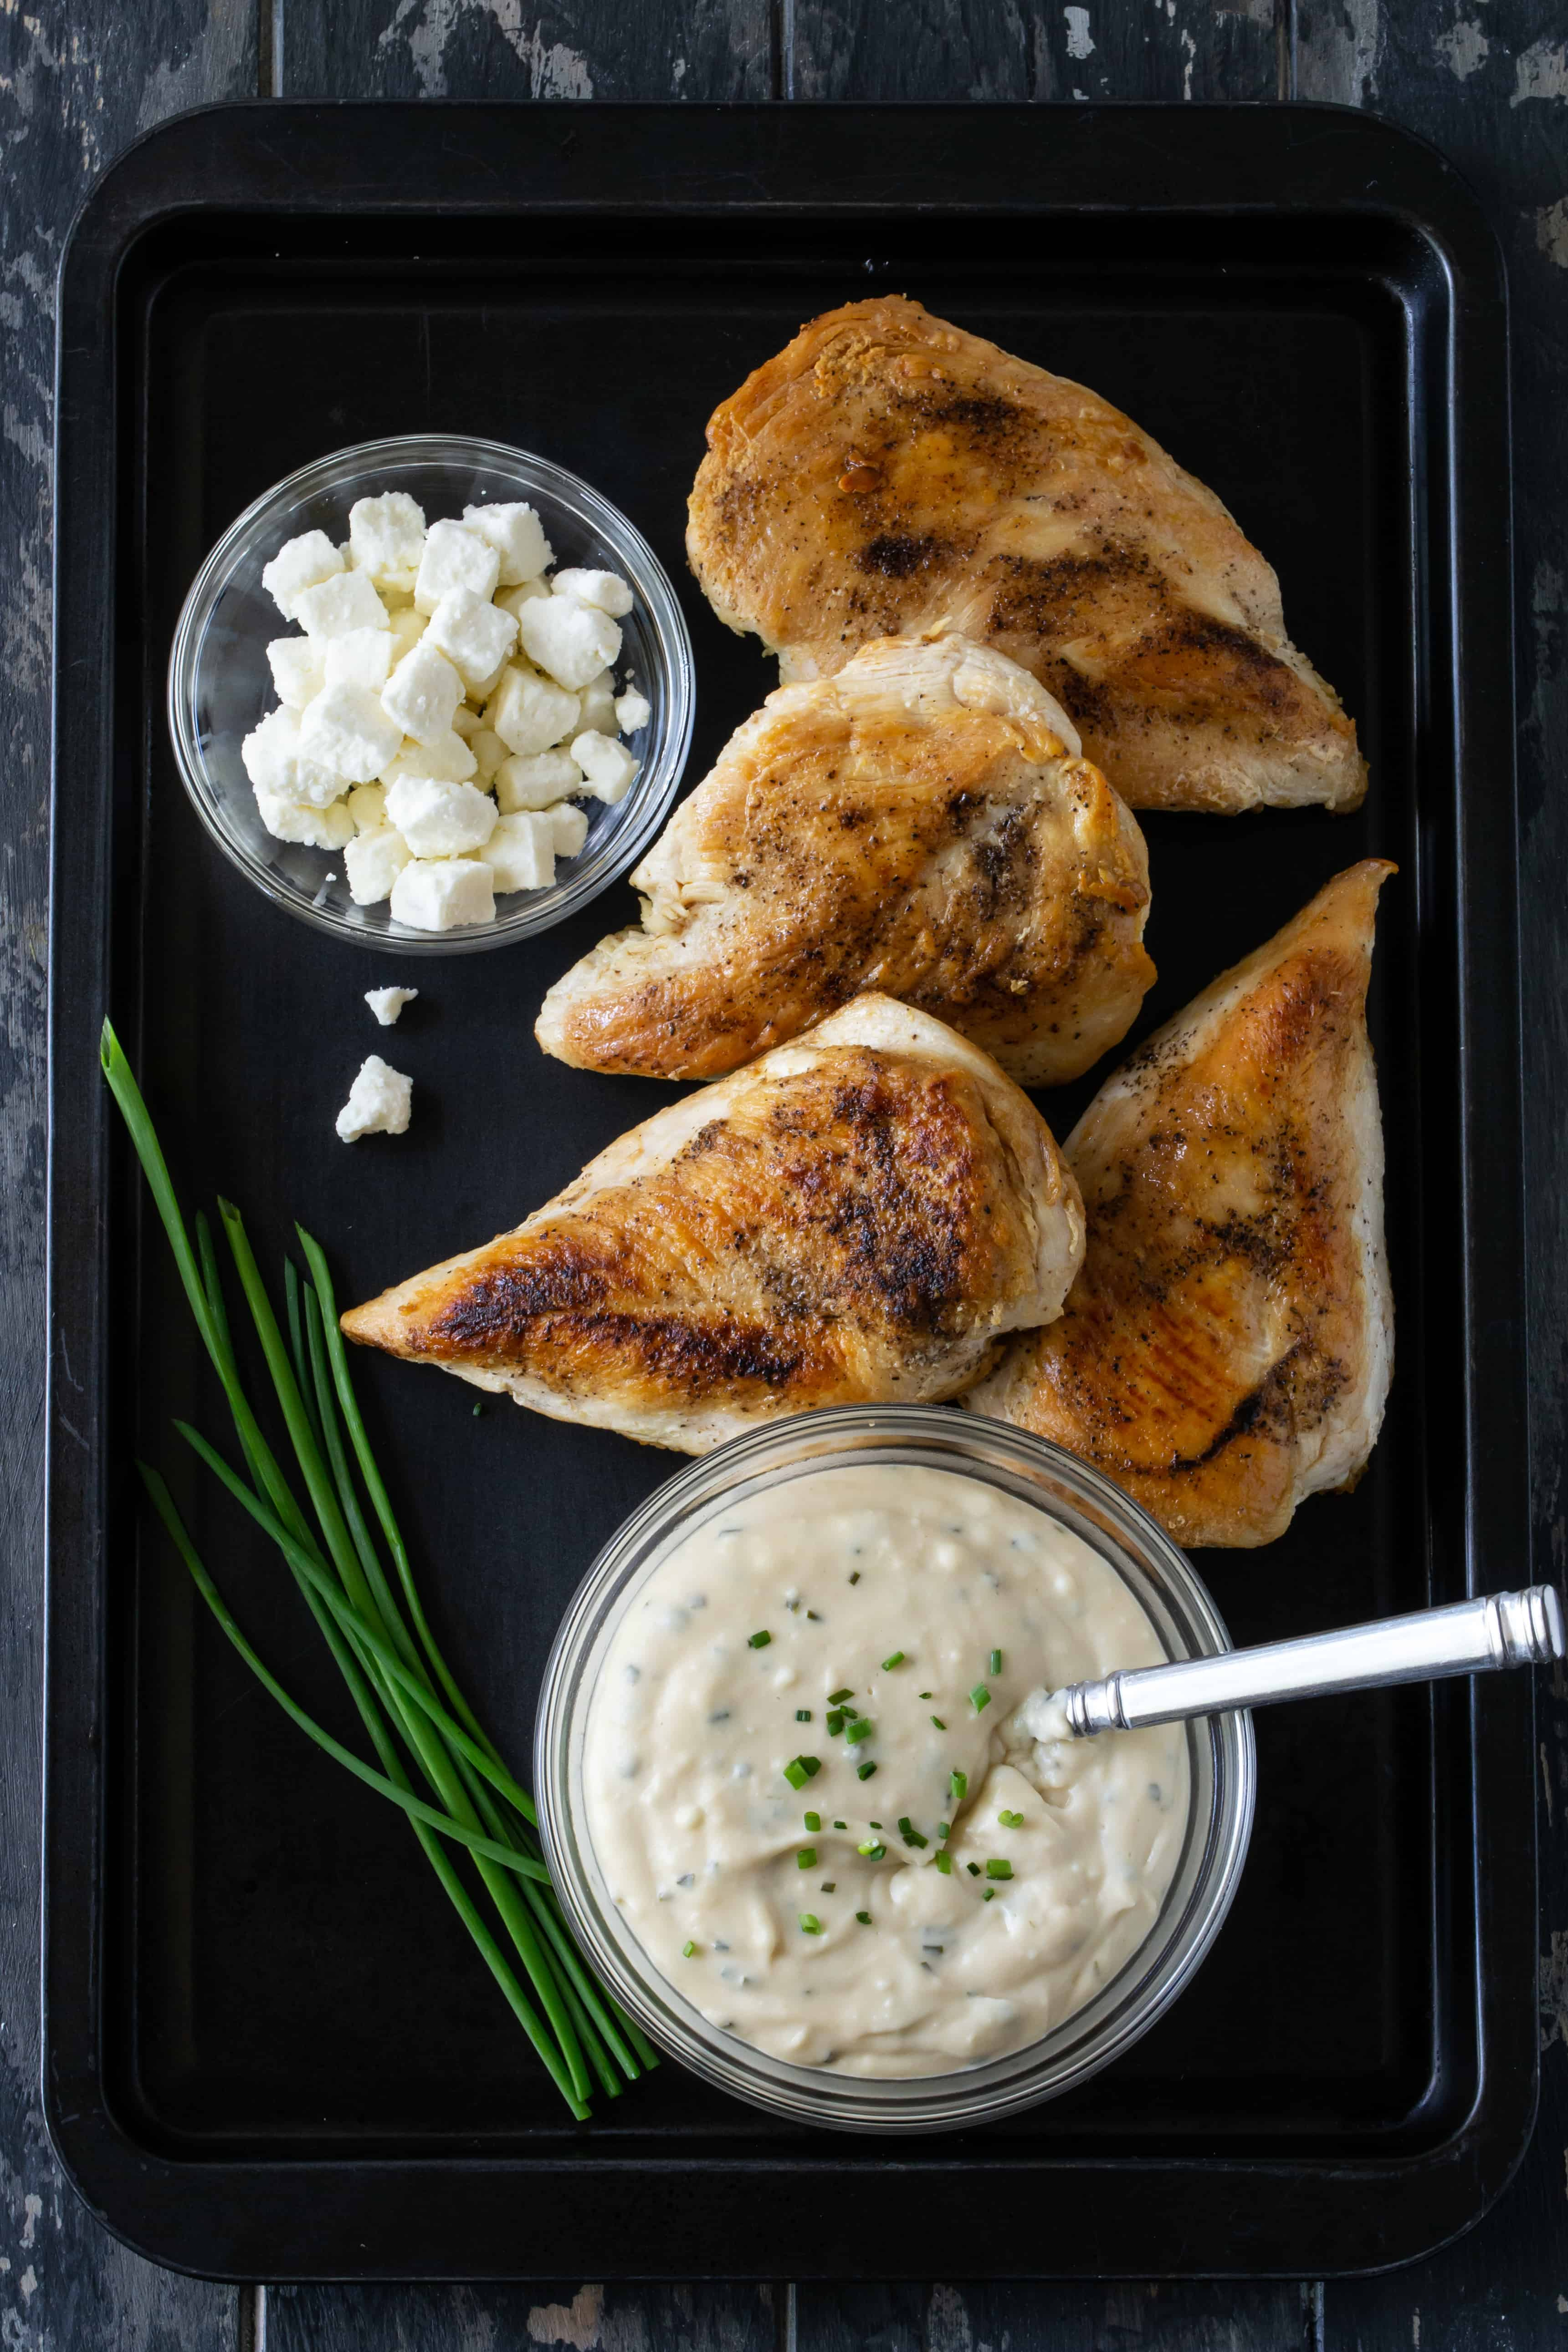 Feta Chicken recipe ingredients on a black sheet pan, including seared chicken breasts, fresh feta cheese chunks, feta cheese sauce and fresh chives.